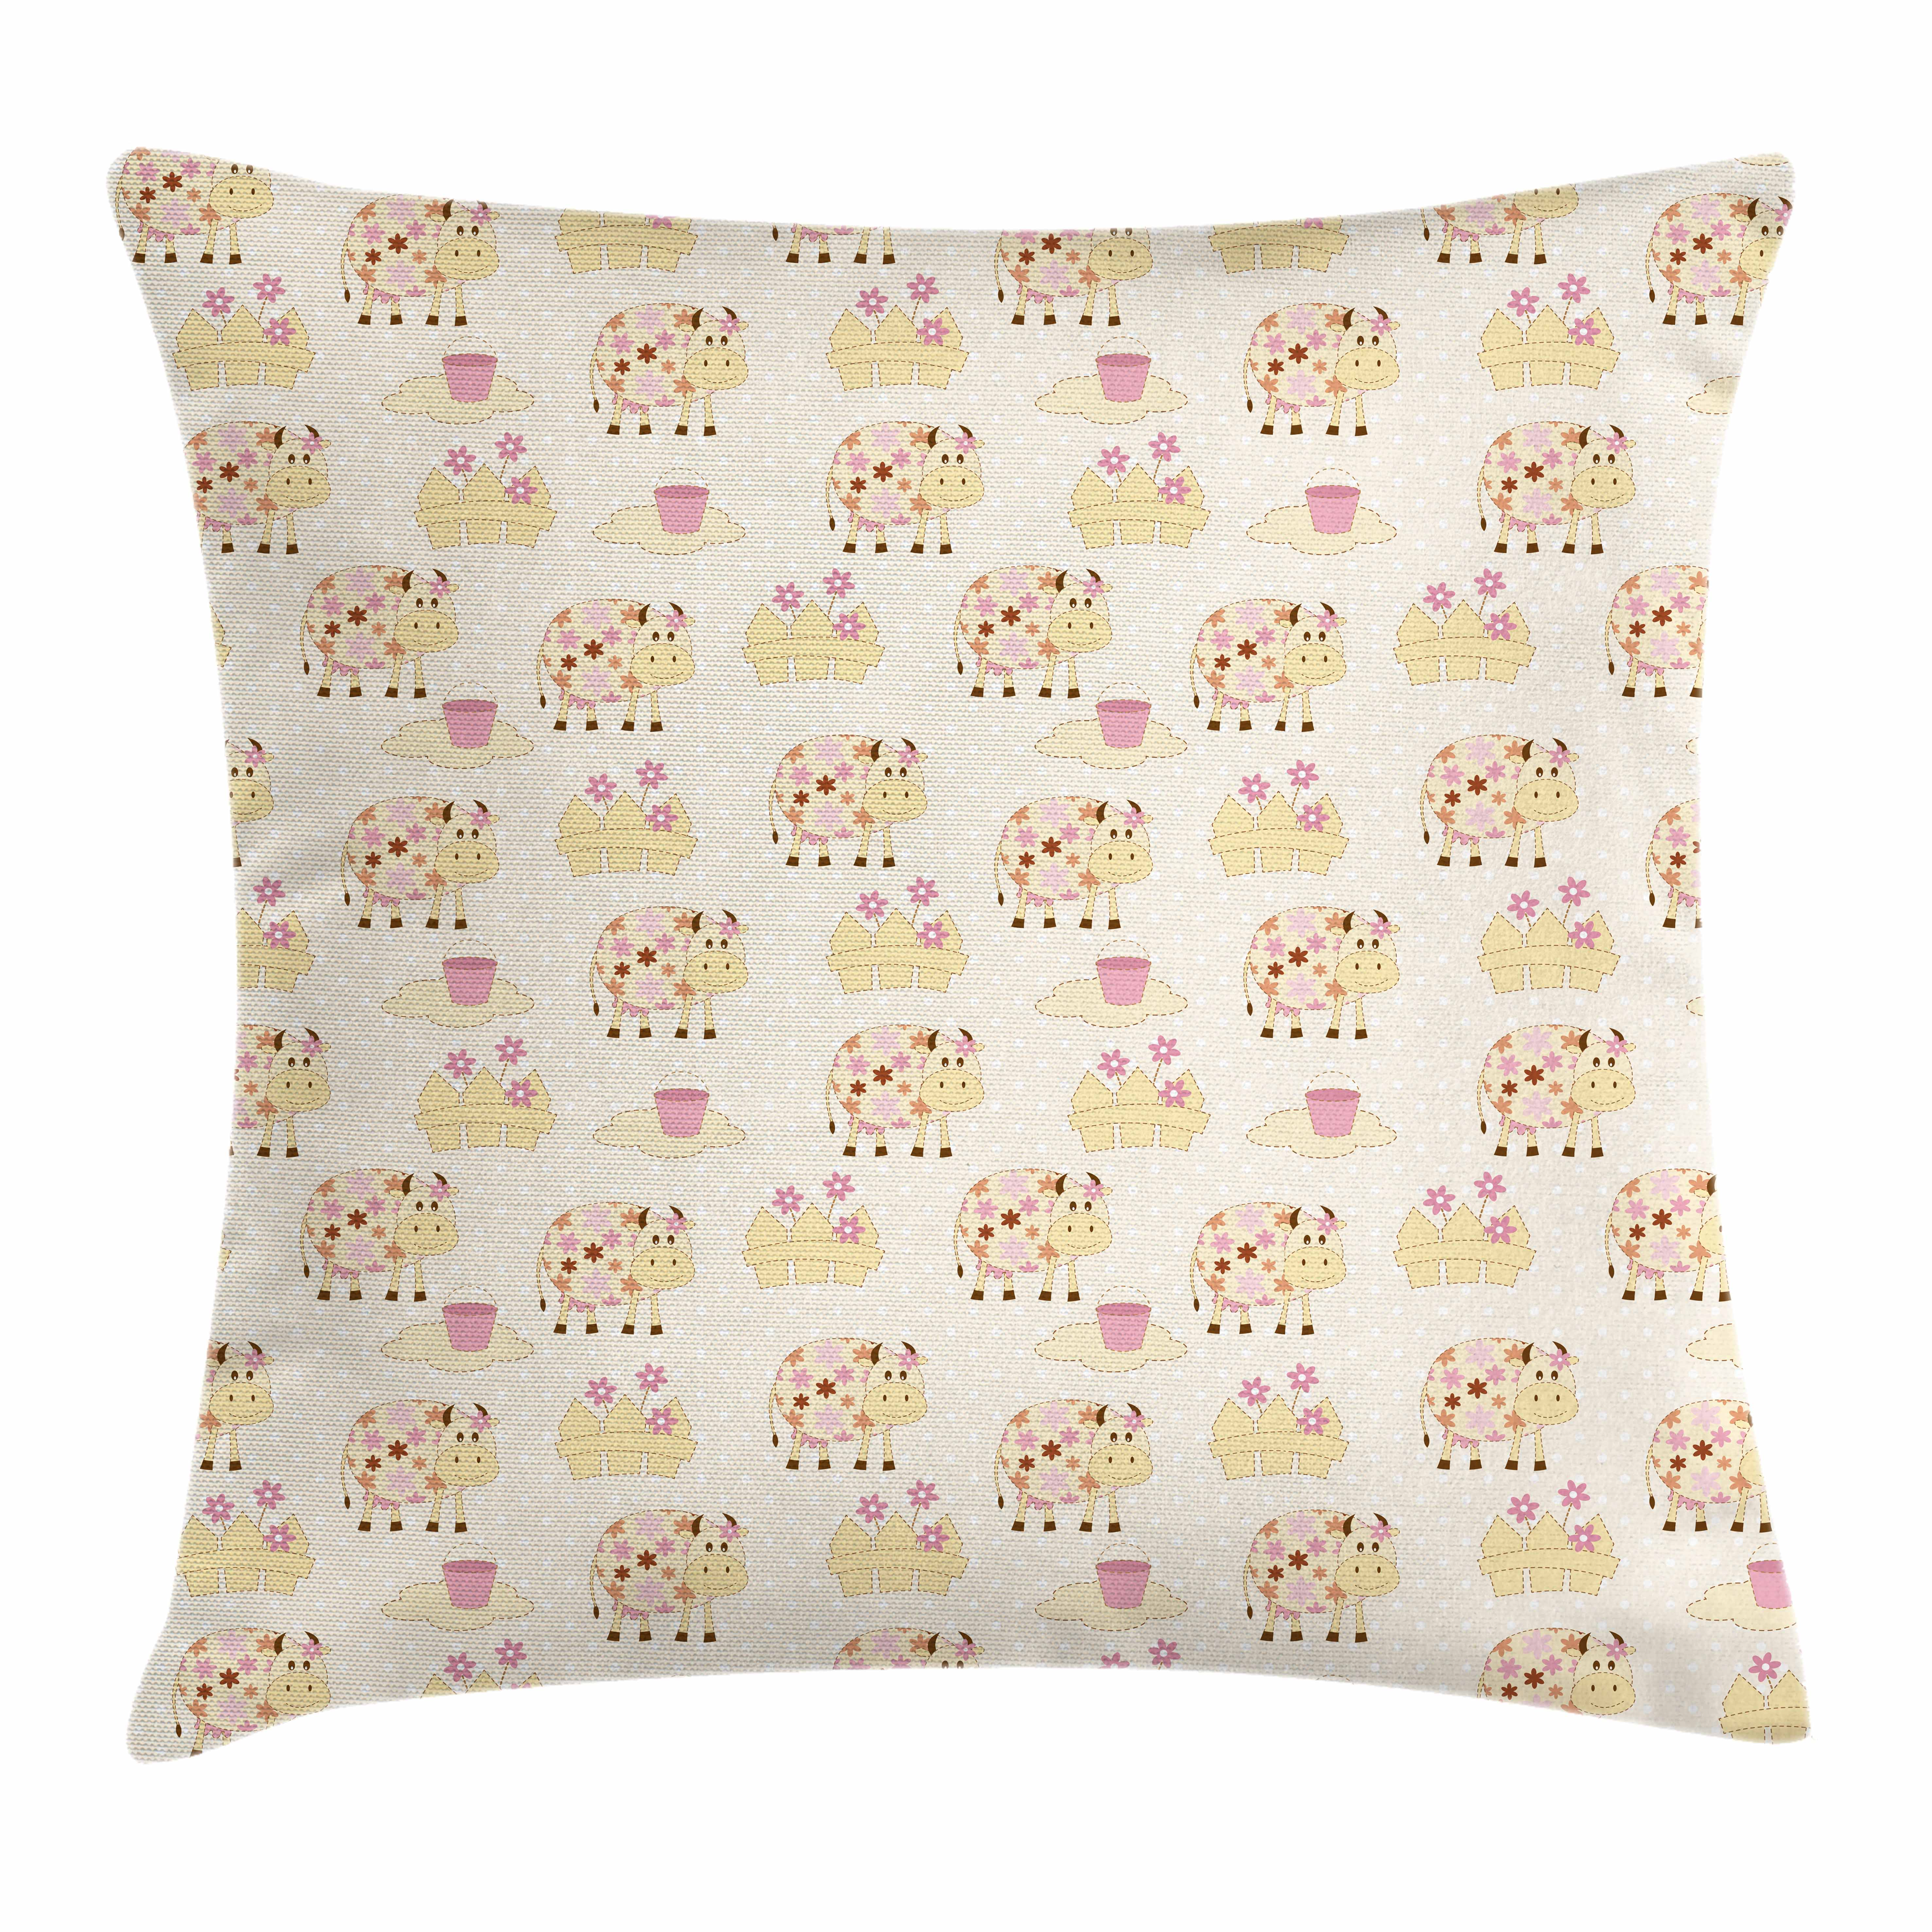 Kids Throw Pillow Cushion Cover, Cows with Flowers on Polka Dots Agriculture Farm Animal Country Life Inspired, Decorative Square Accent Pillow Case, 20 X 20 Inches, Cream Pink Brown, by Ambesonne